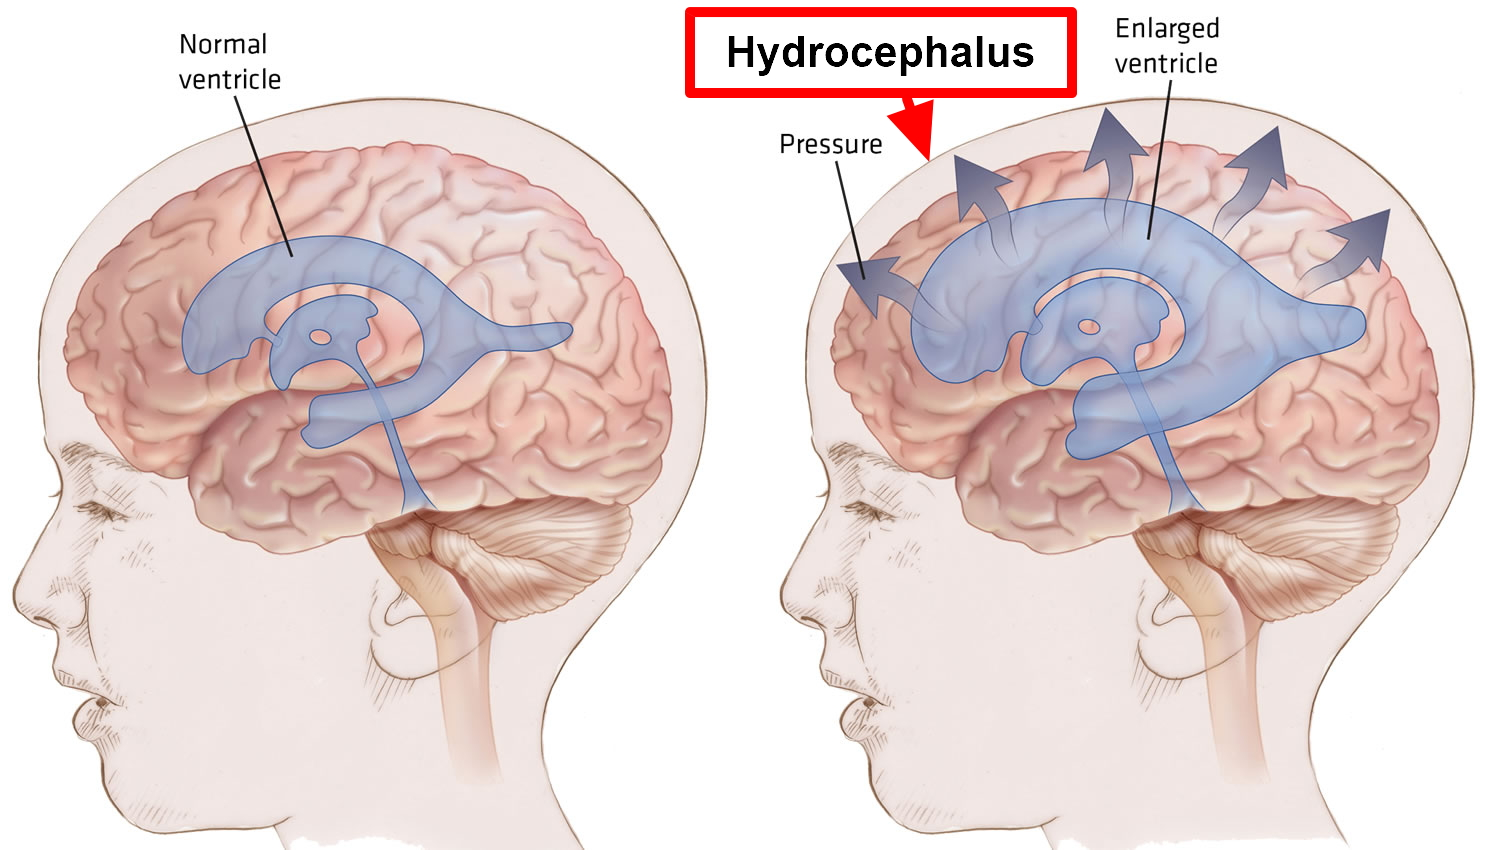 Hydrocephalus in adult